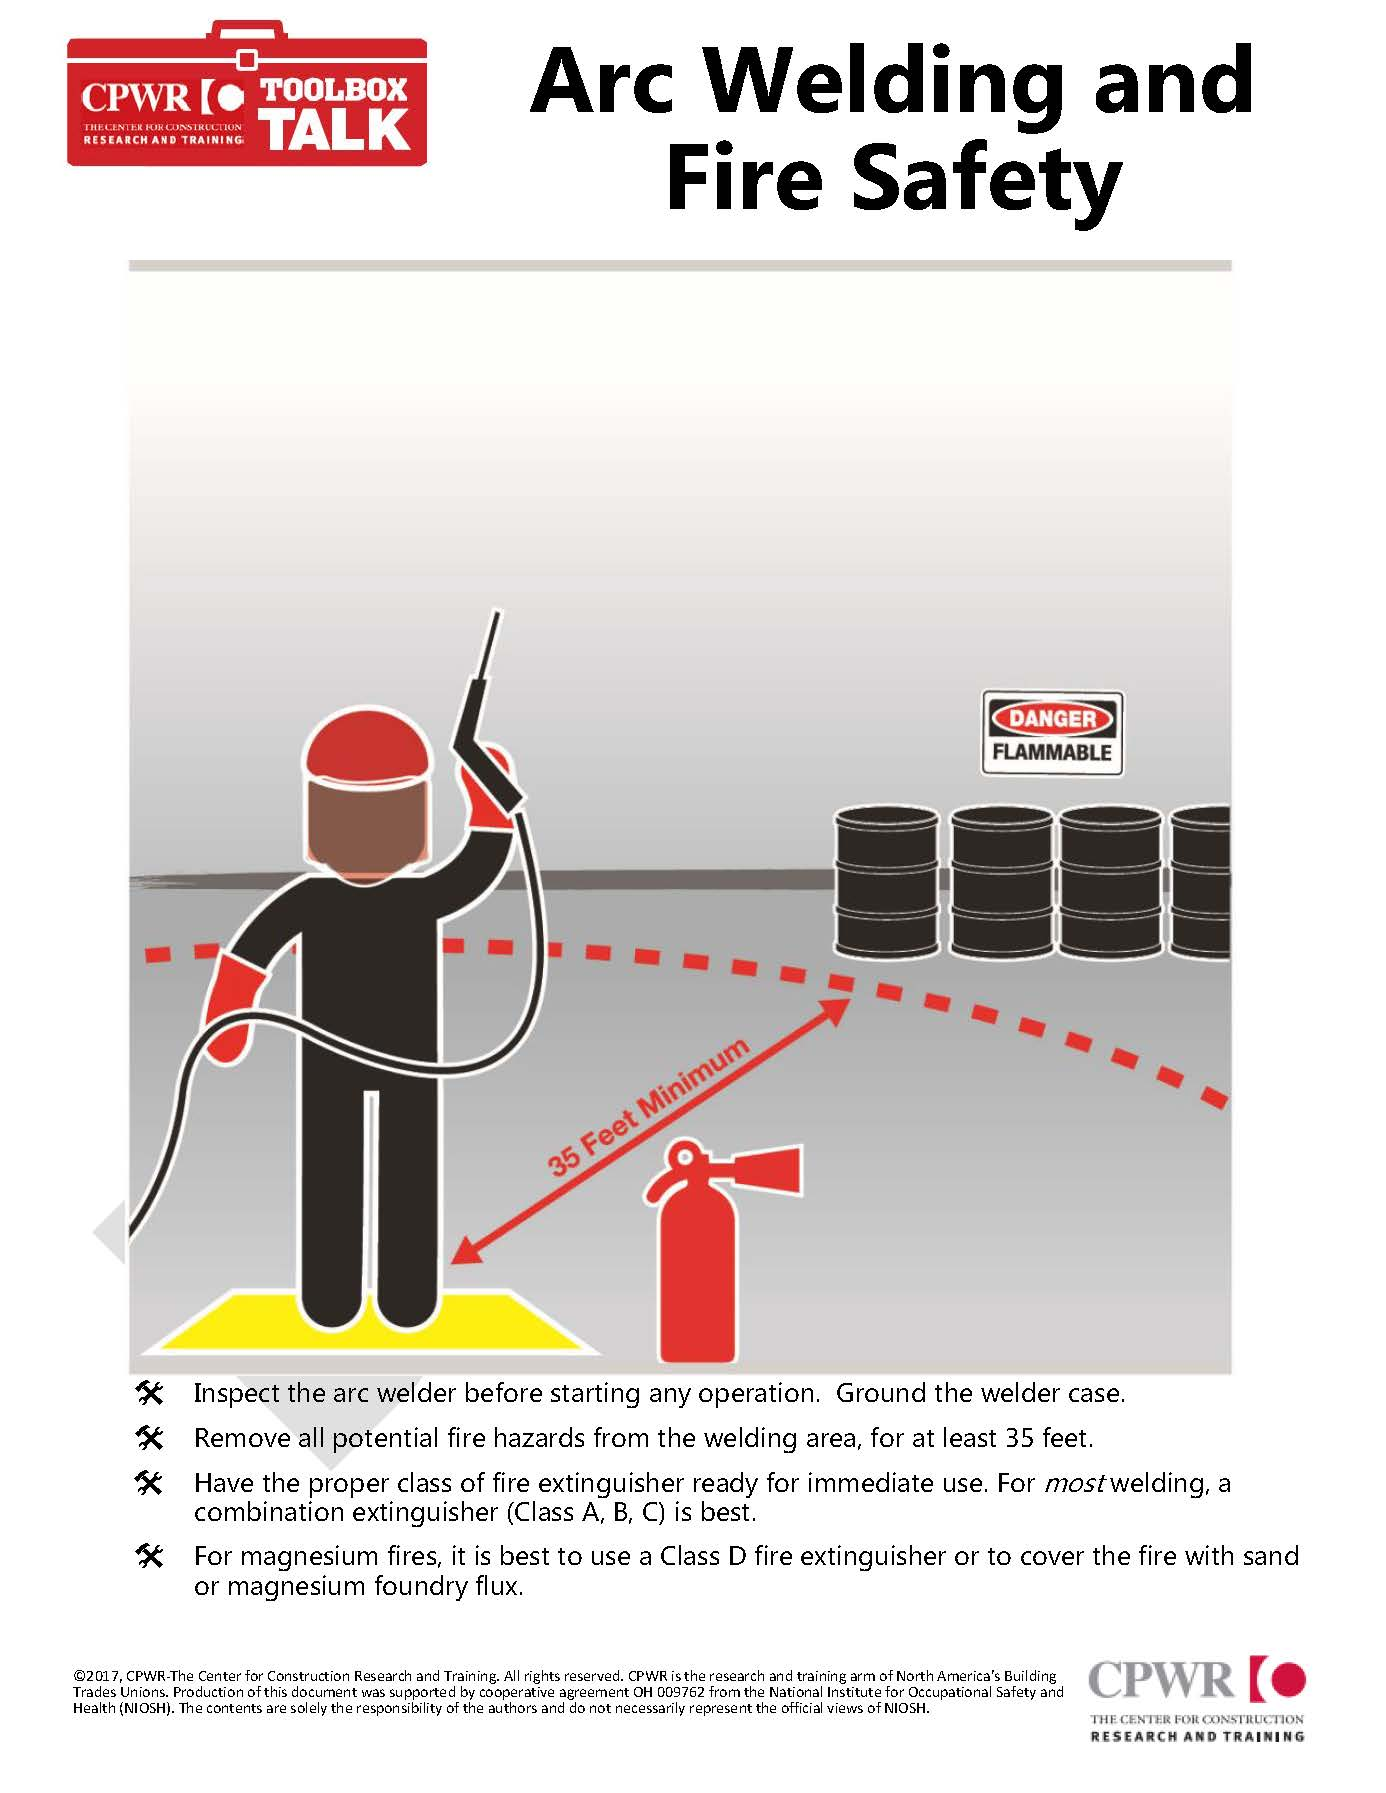 Arc-Welding-and-Fire-Safety-TBT